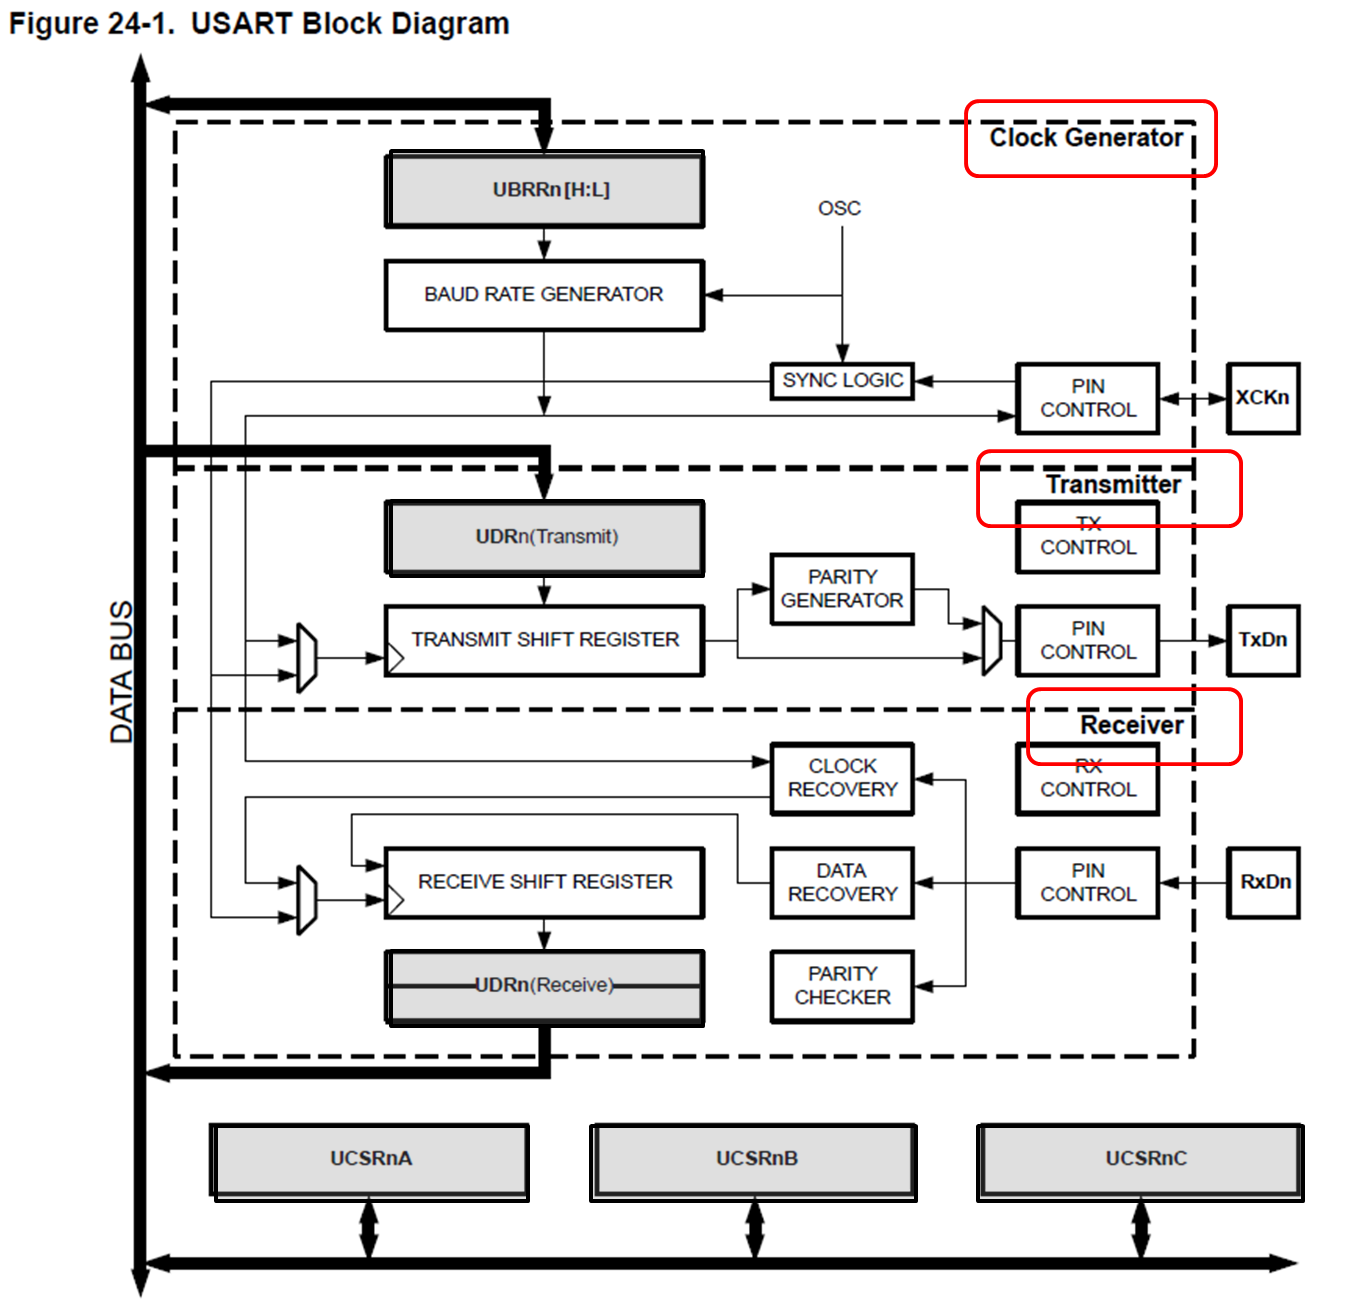 usart-block-diagram.png